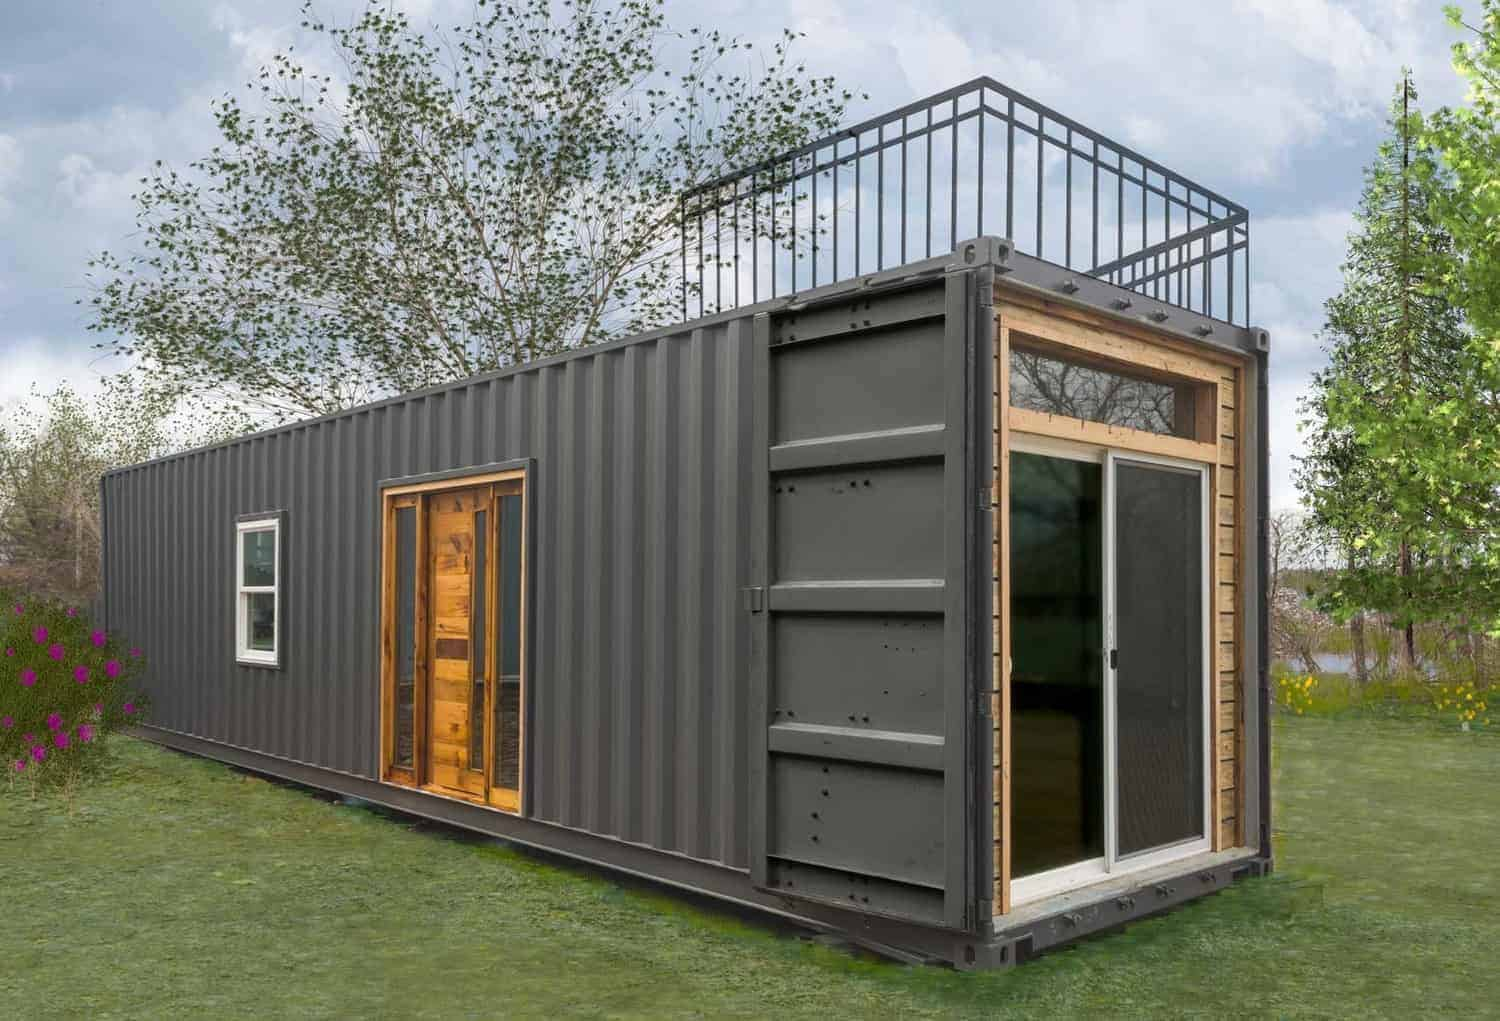 Tiny house created from a single shipping container with roof-top deck.